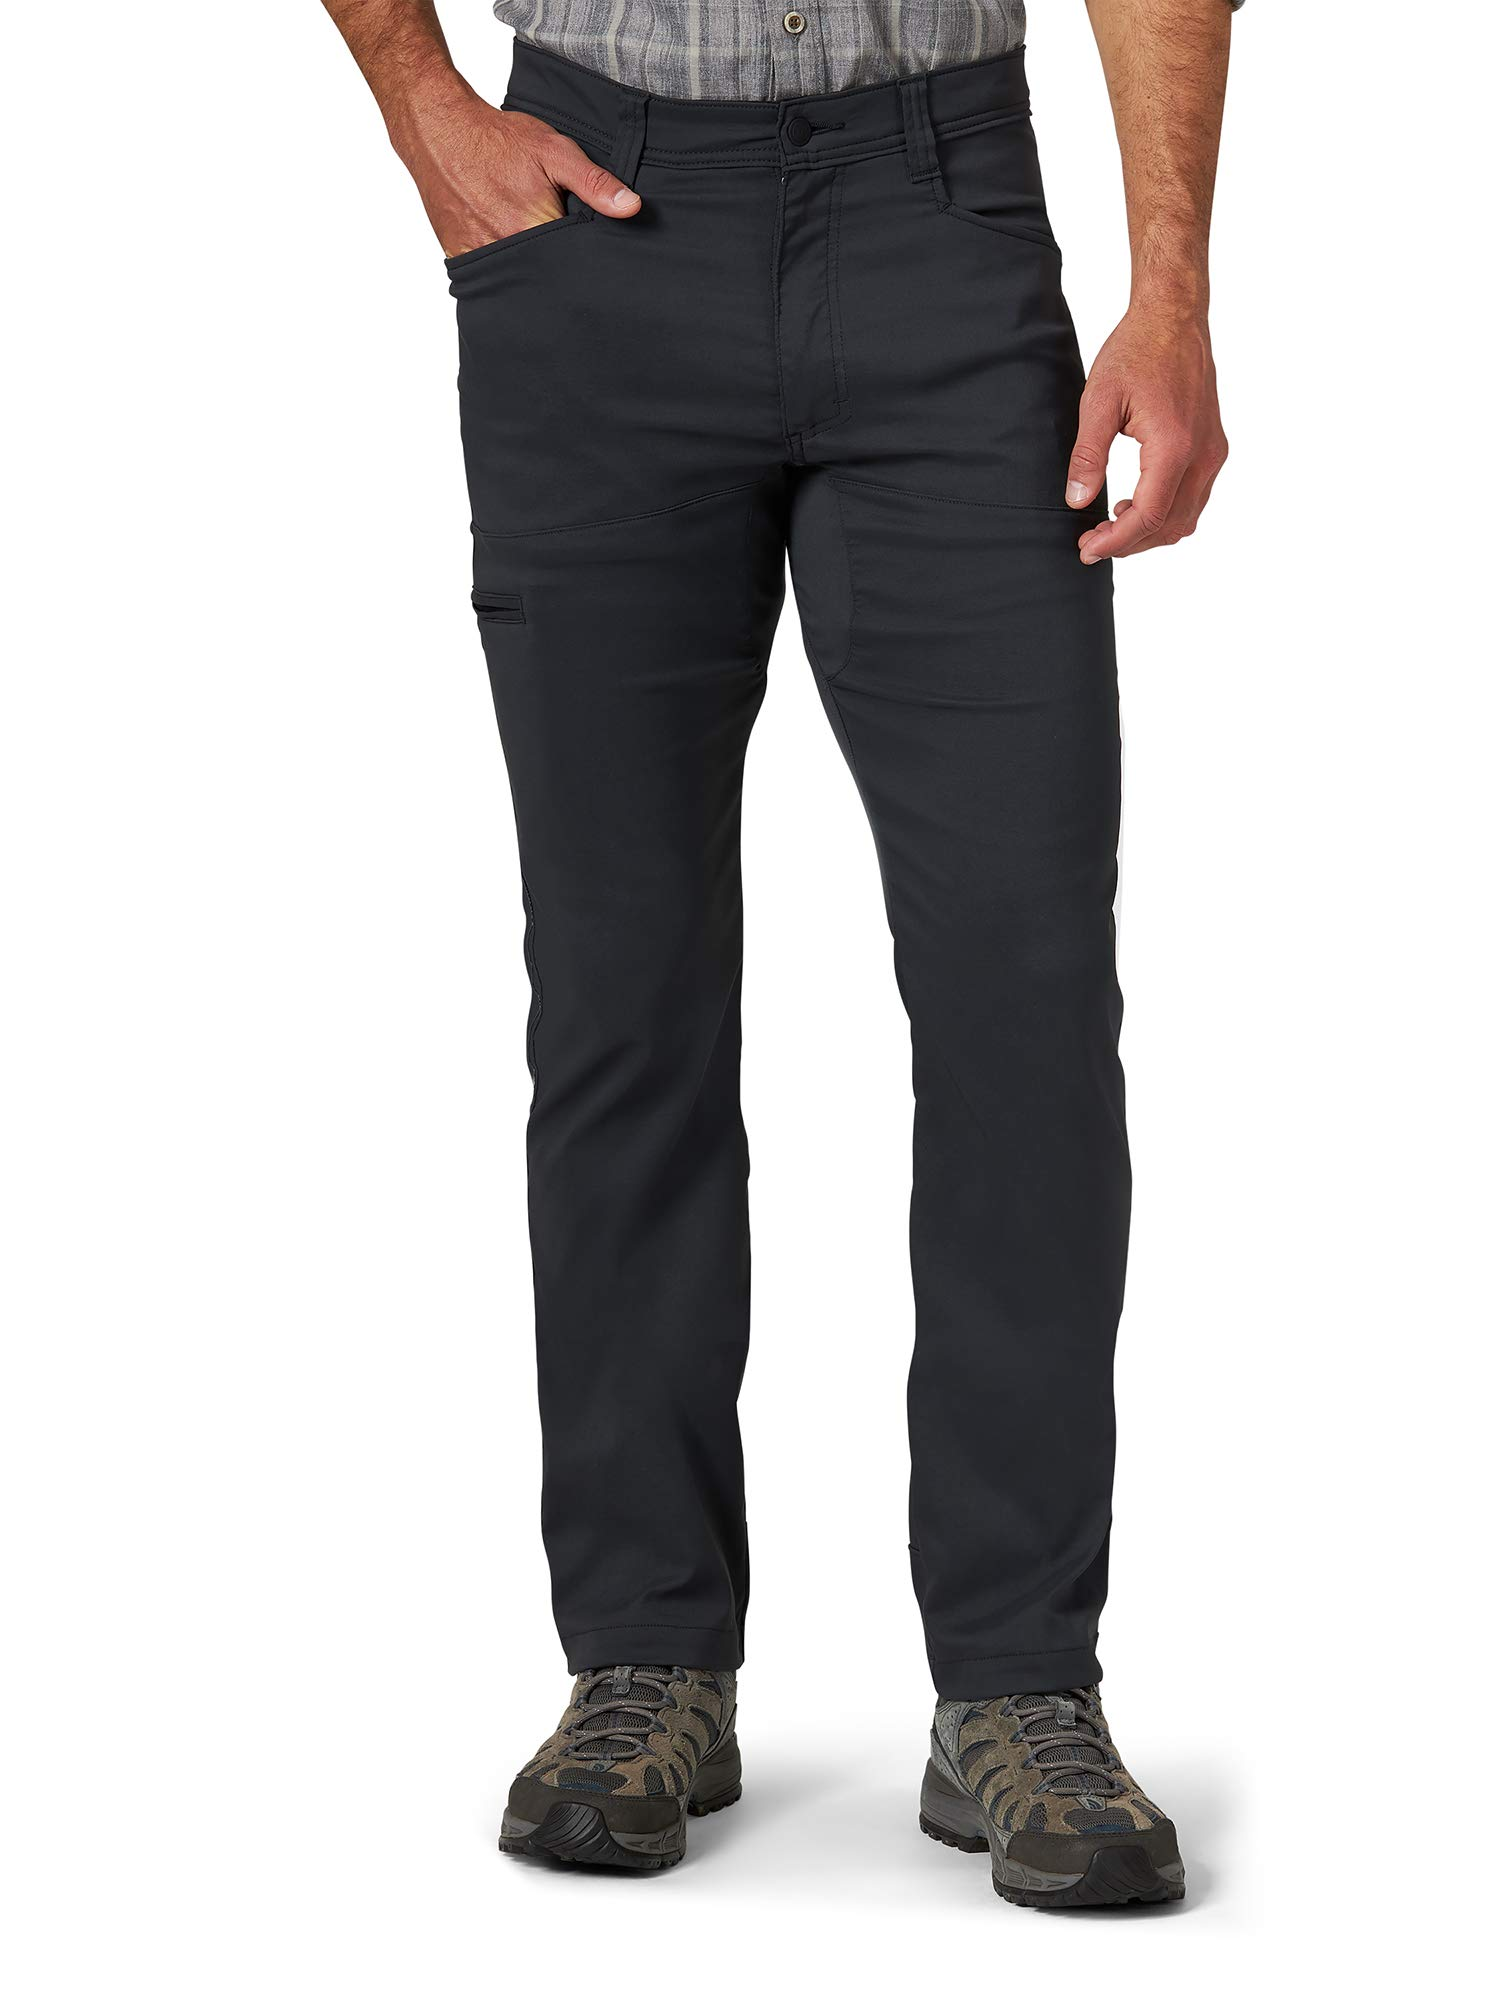 ATG by Wrangler Mens Synthetic Utility Pant